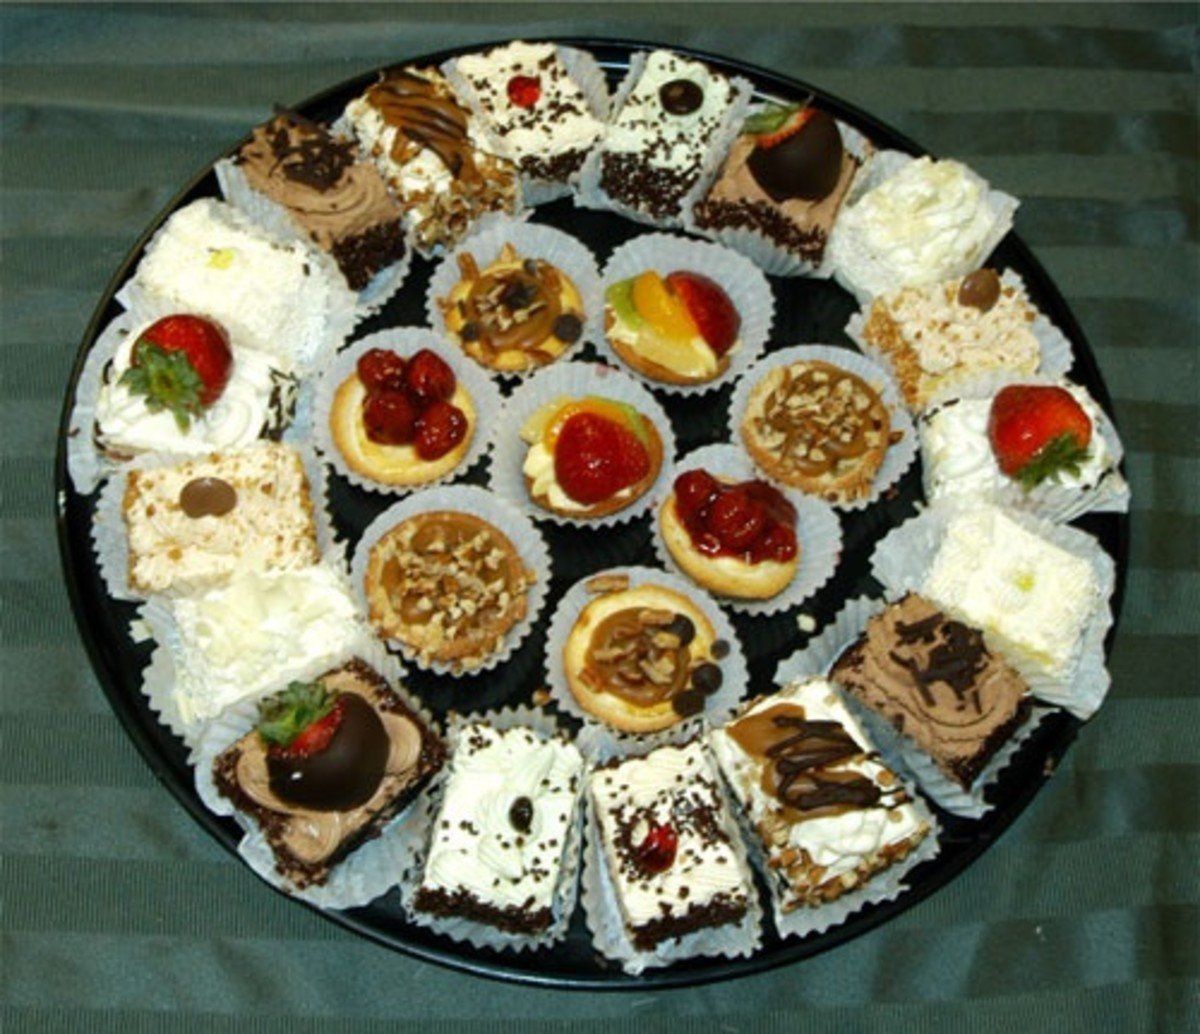 Assortment Of Mini Pastries